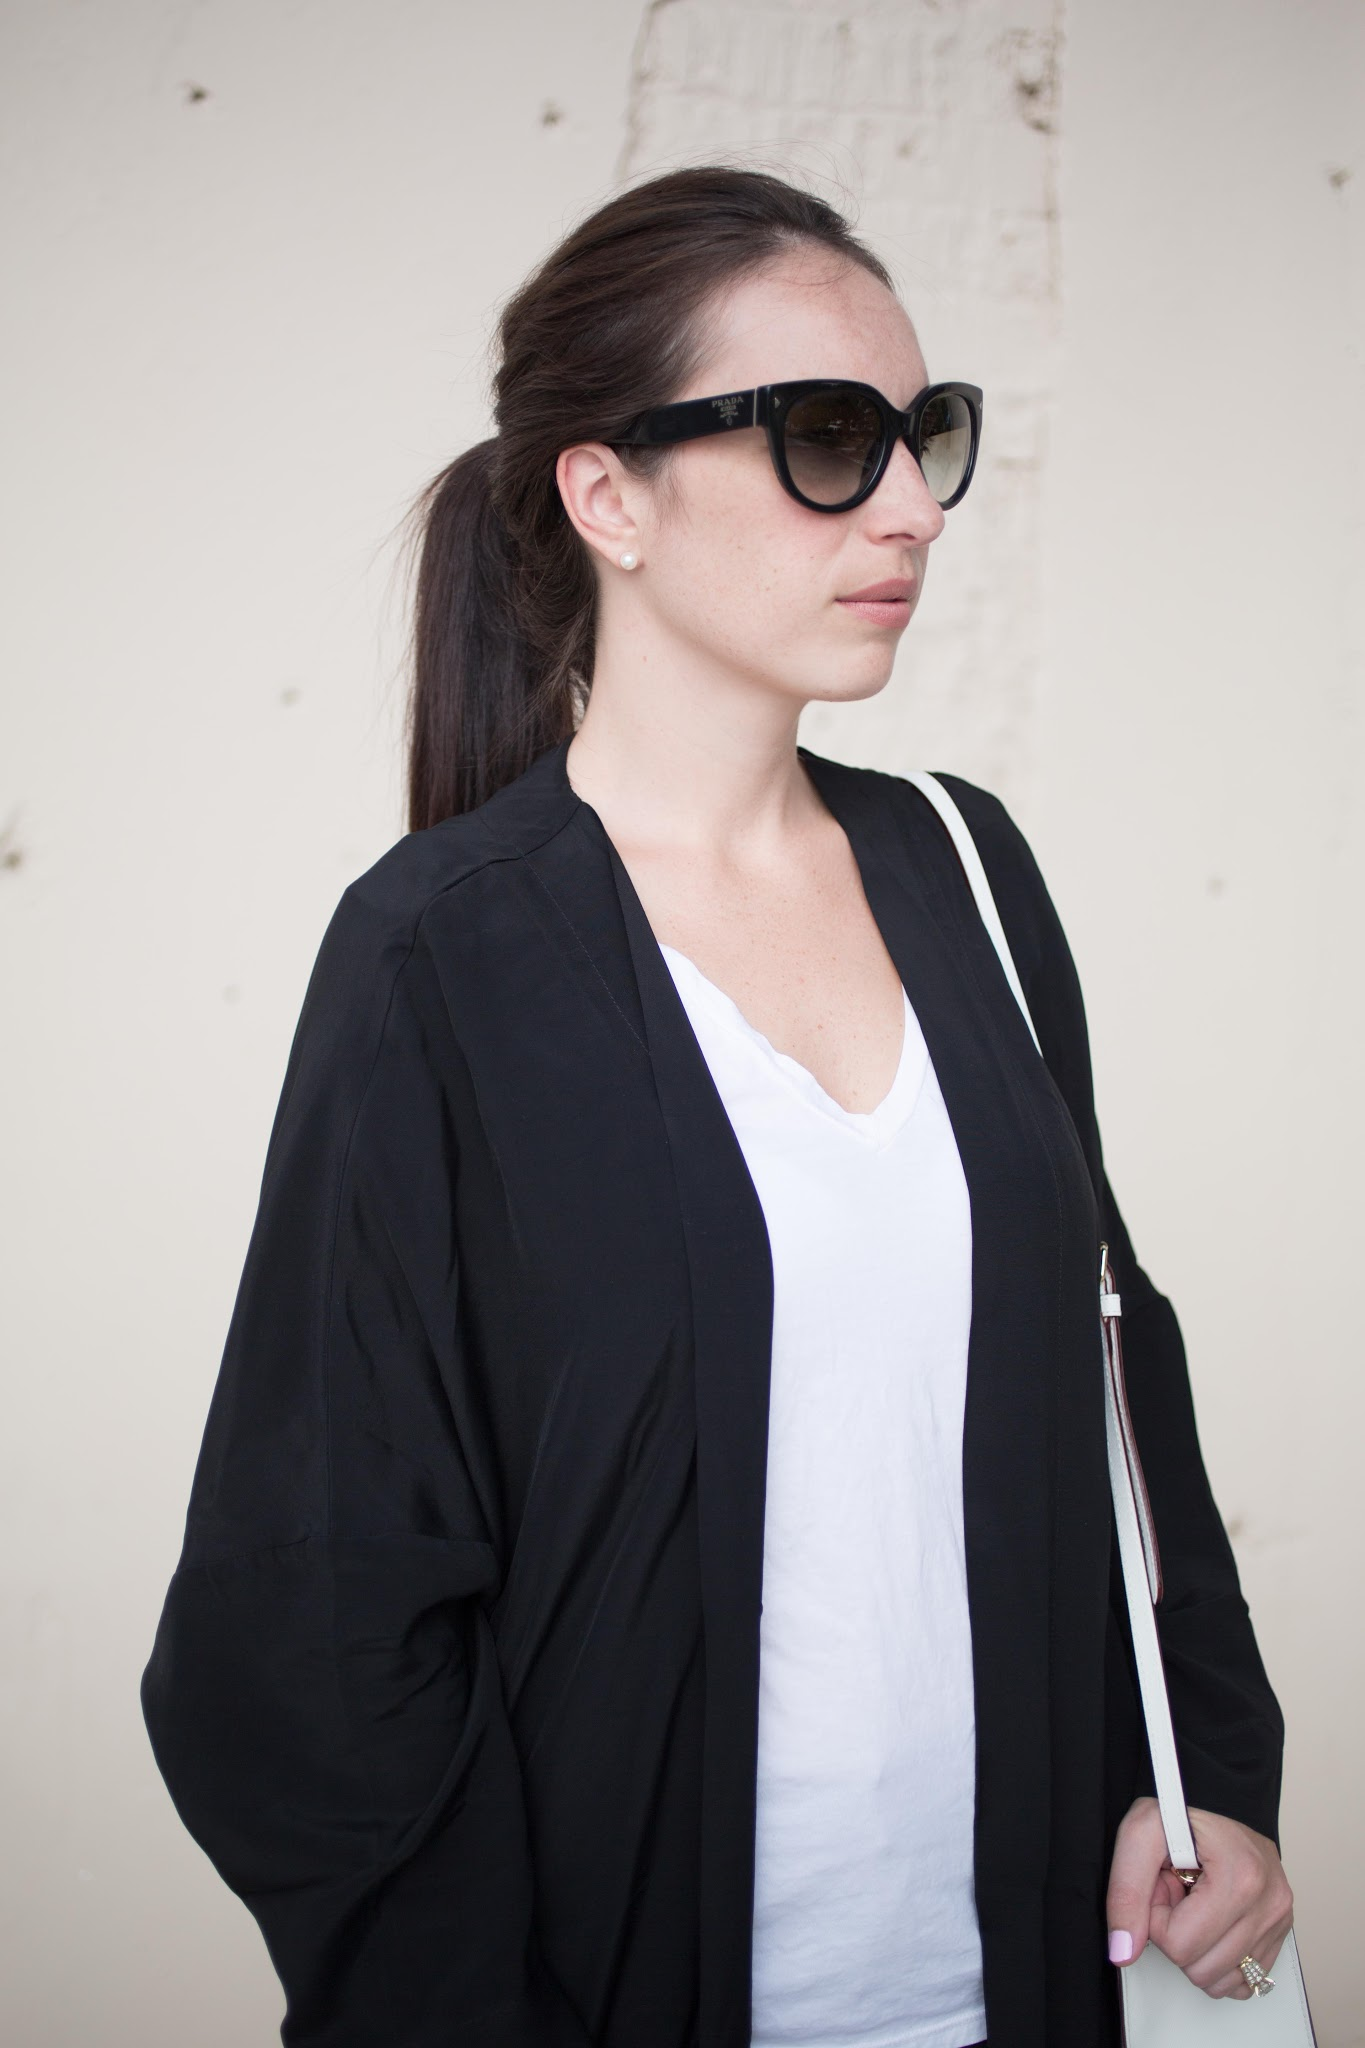 duster coat prada cateye sunglasses duster coat womenswear style fashion